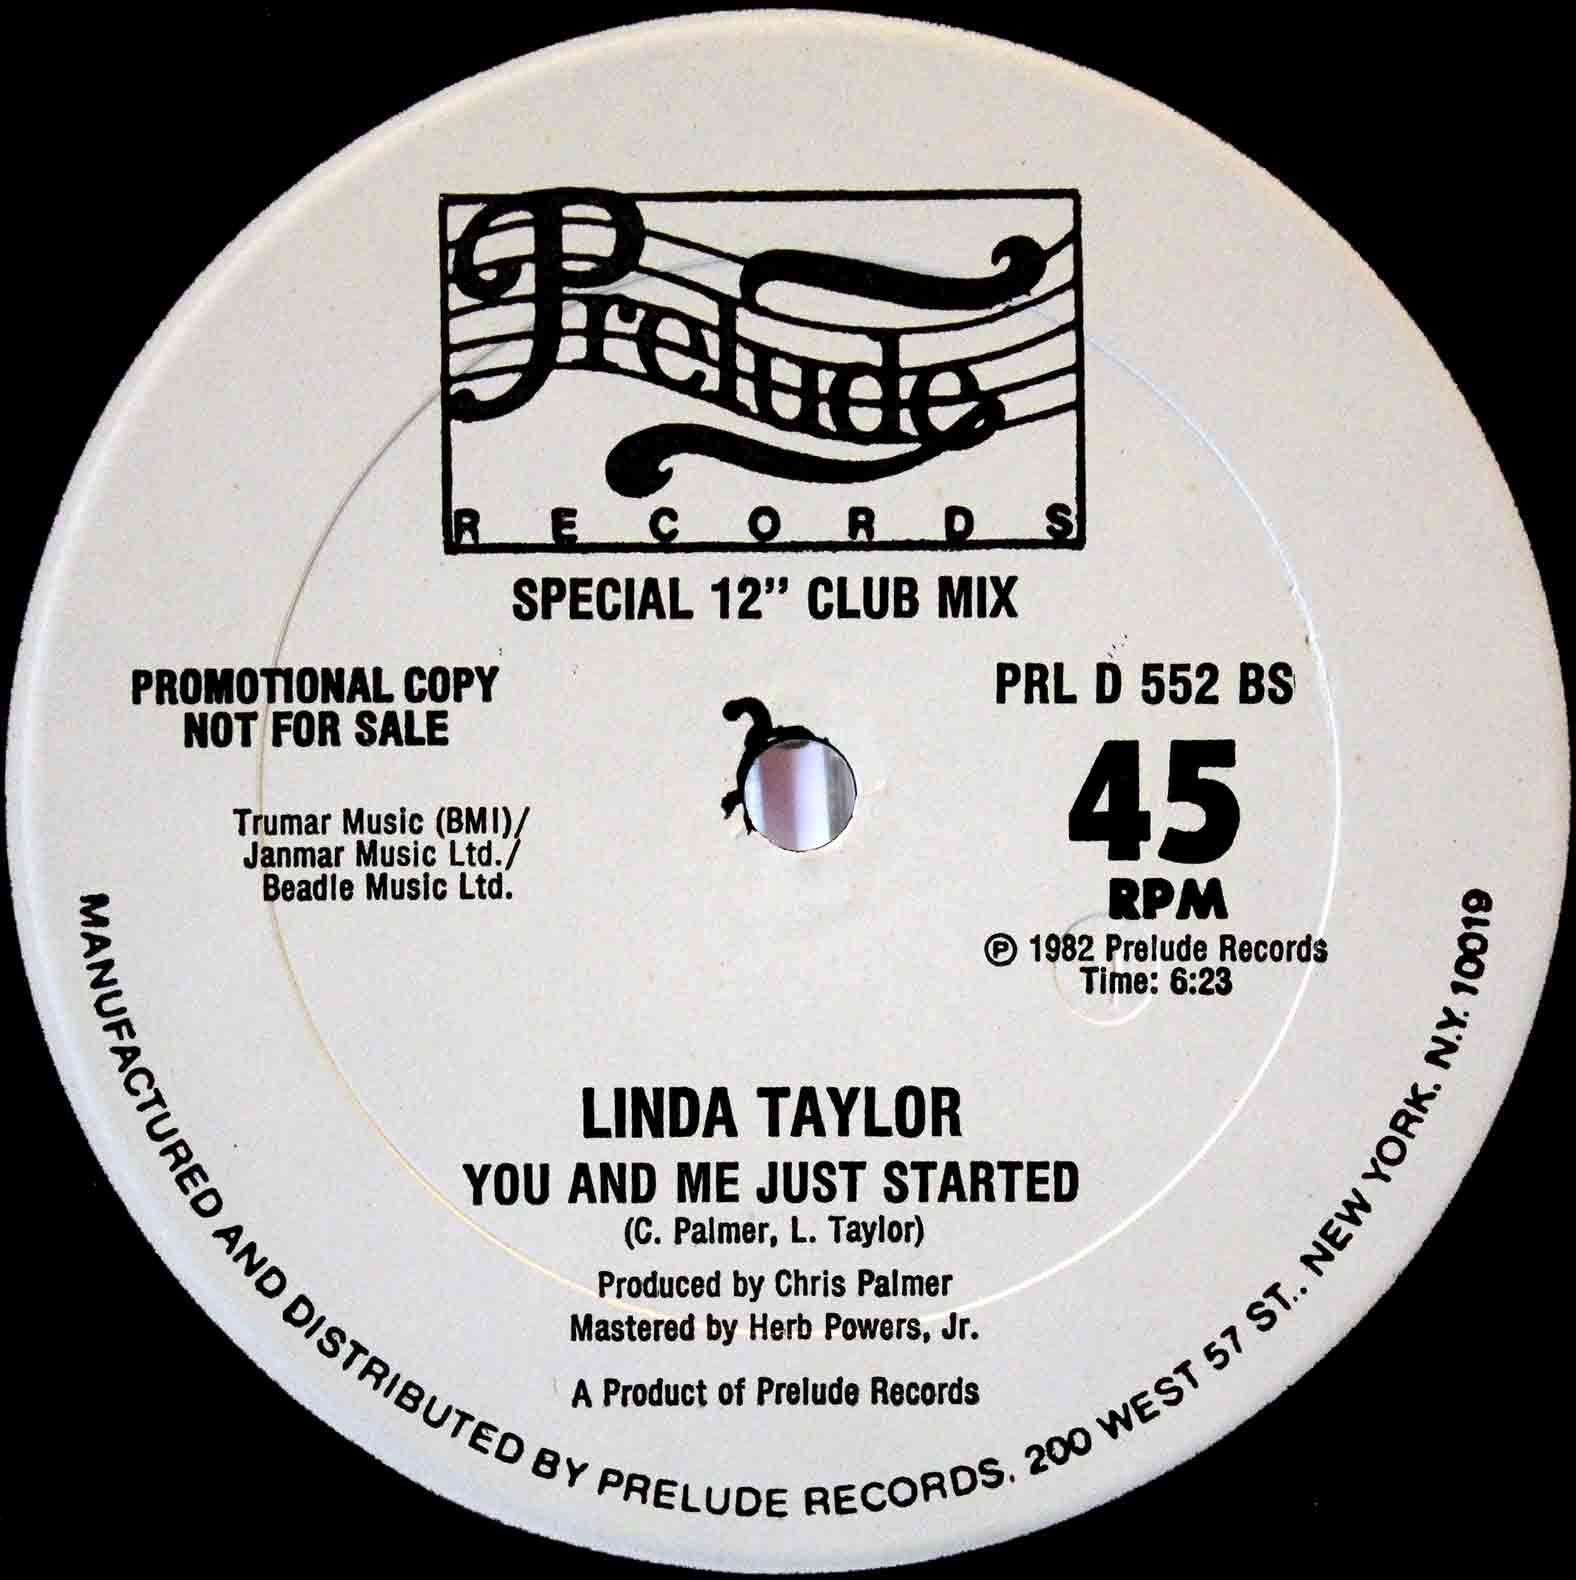 Linda Taylor – You And Me Just Started 04